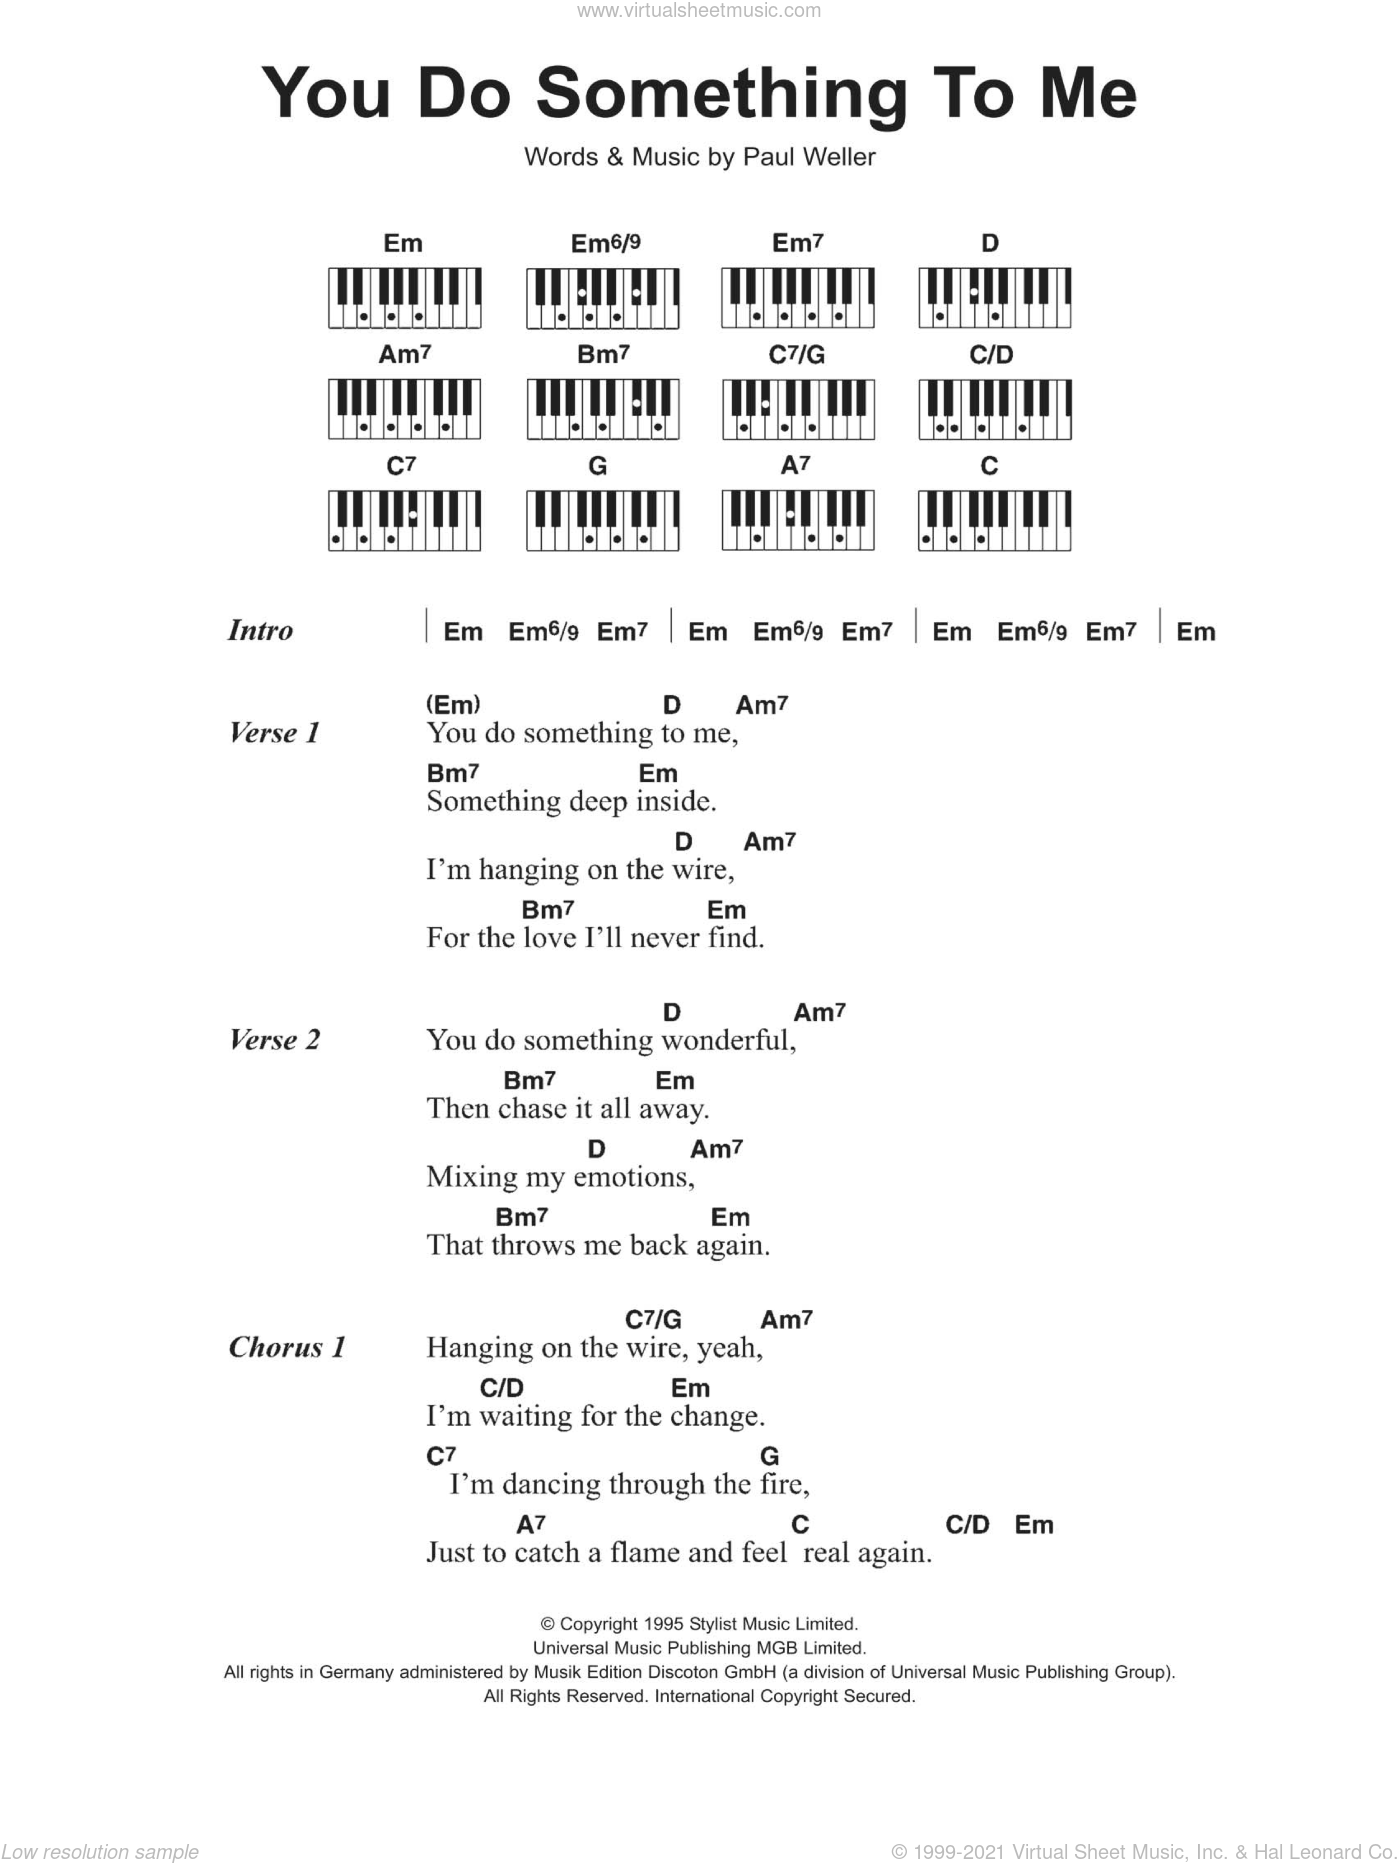 You Do Something To Me sheet music for piano solo (chords, lyrics, melody) by Paul Weller